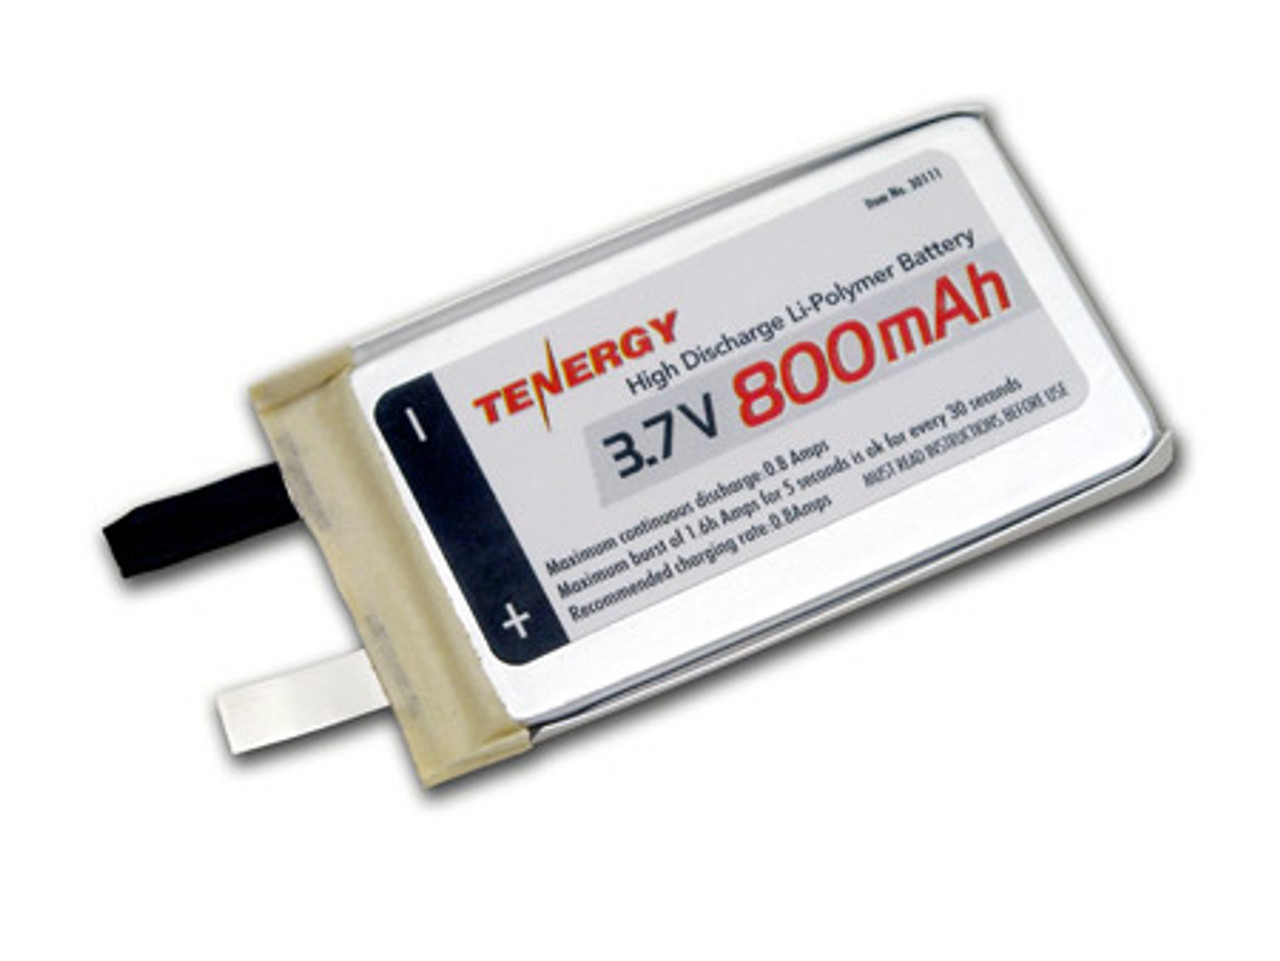 Tenergy Li-Polymer 3.7V 800mAh (383562) Battery